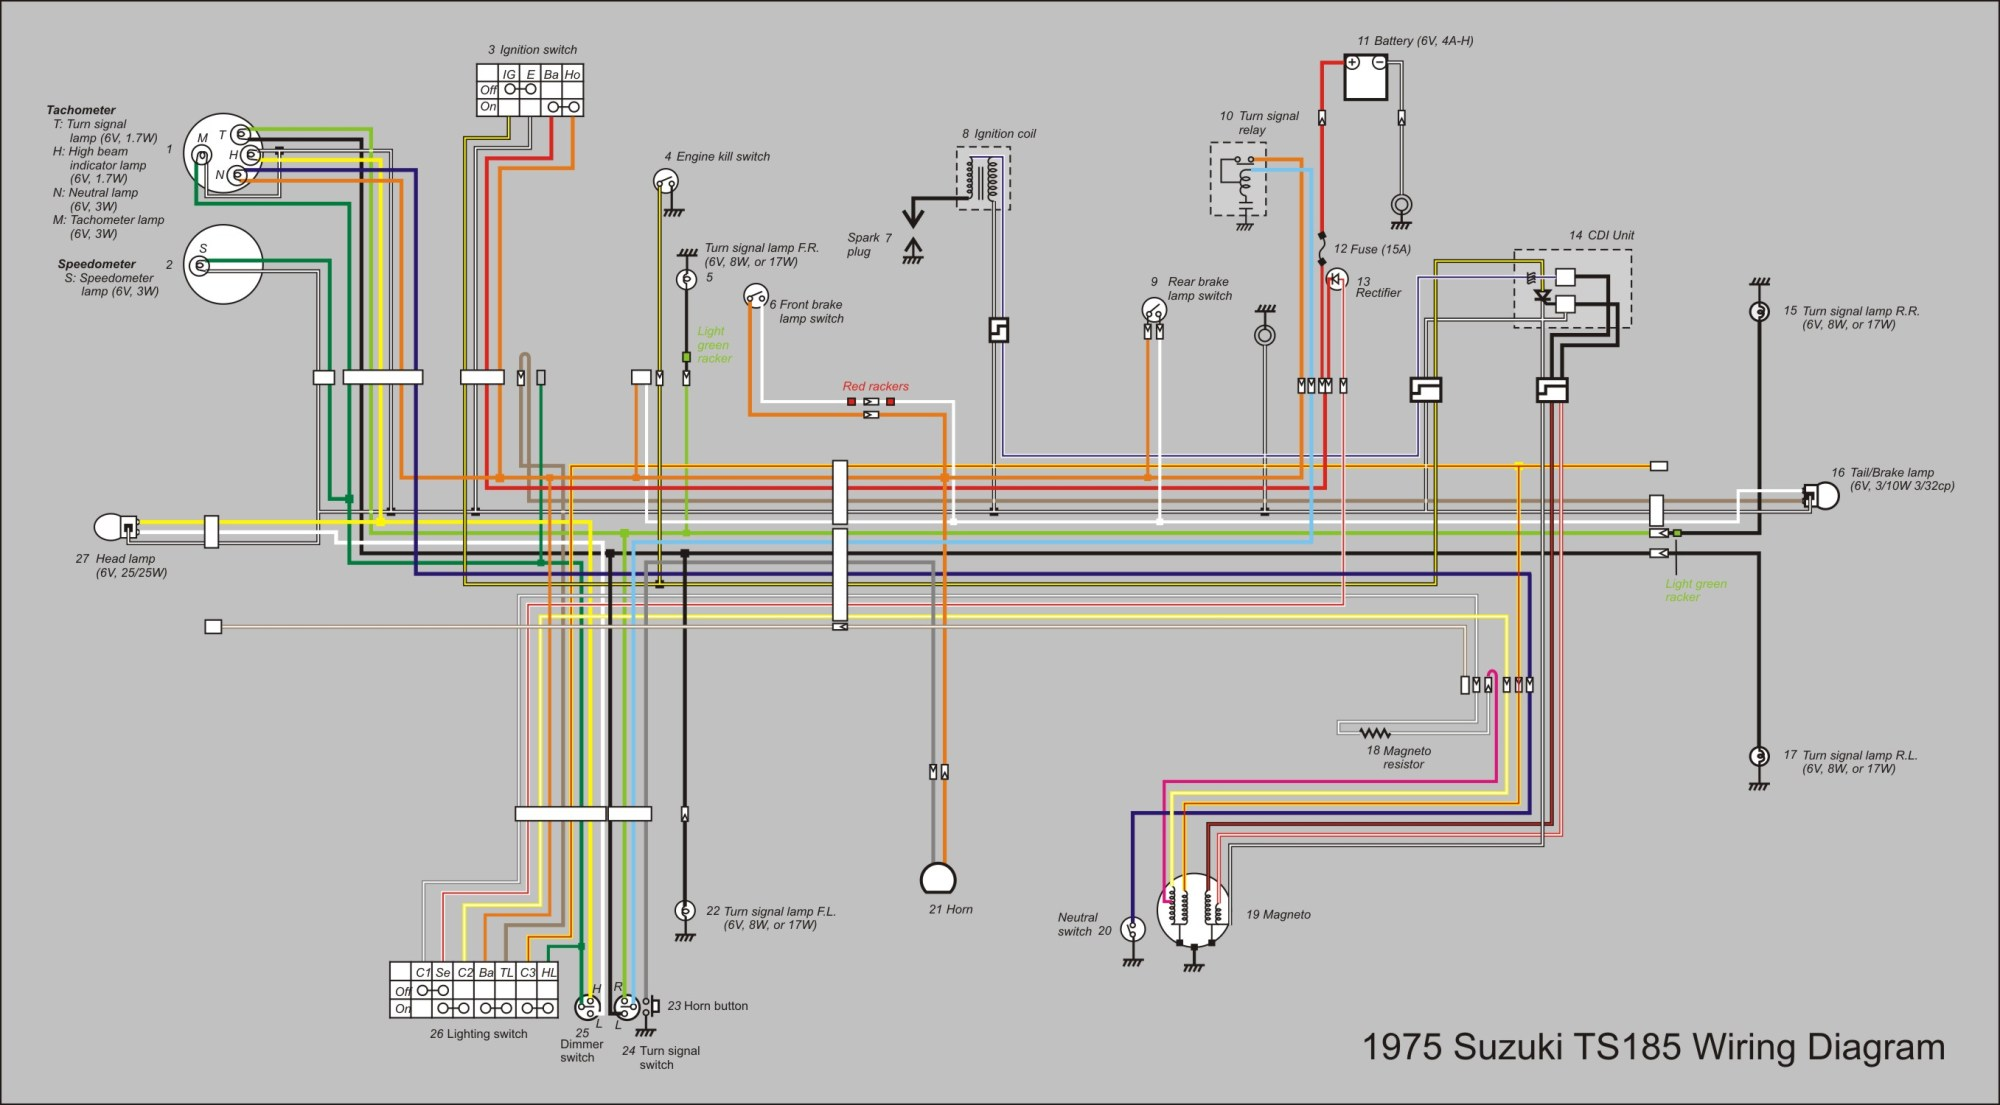 hight resolution of file ts185 wiring diagram new jpg wikimedia commons suzuki samurai wiring schematic suzuki wiring schematics